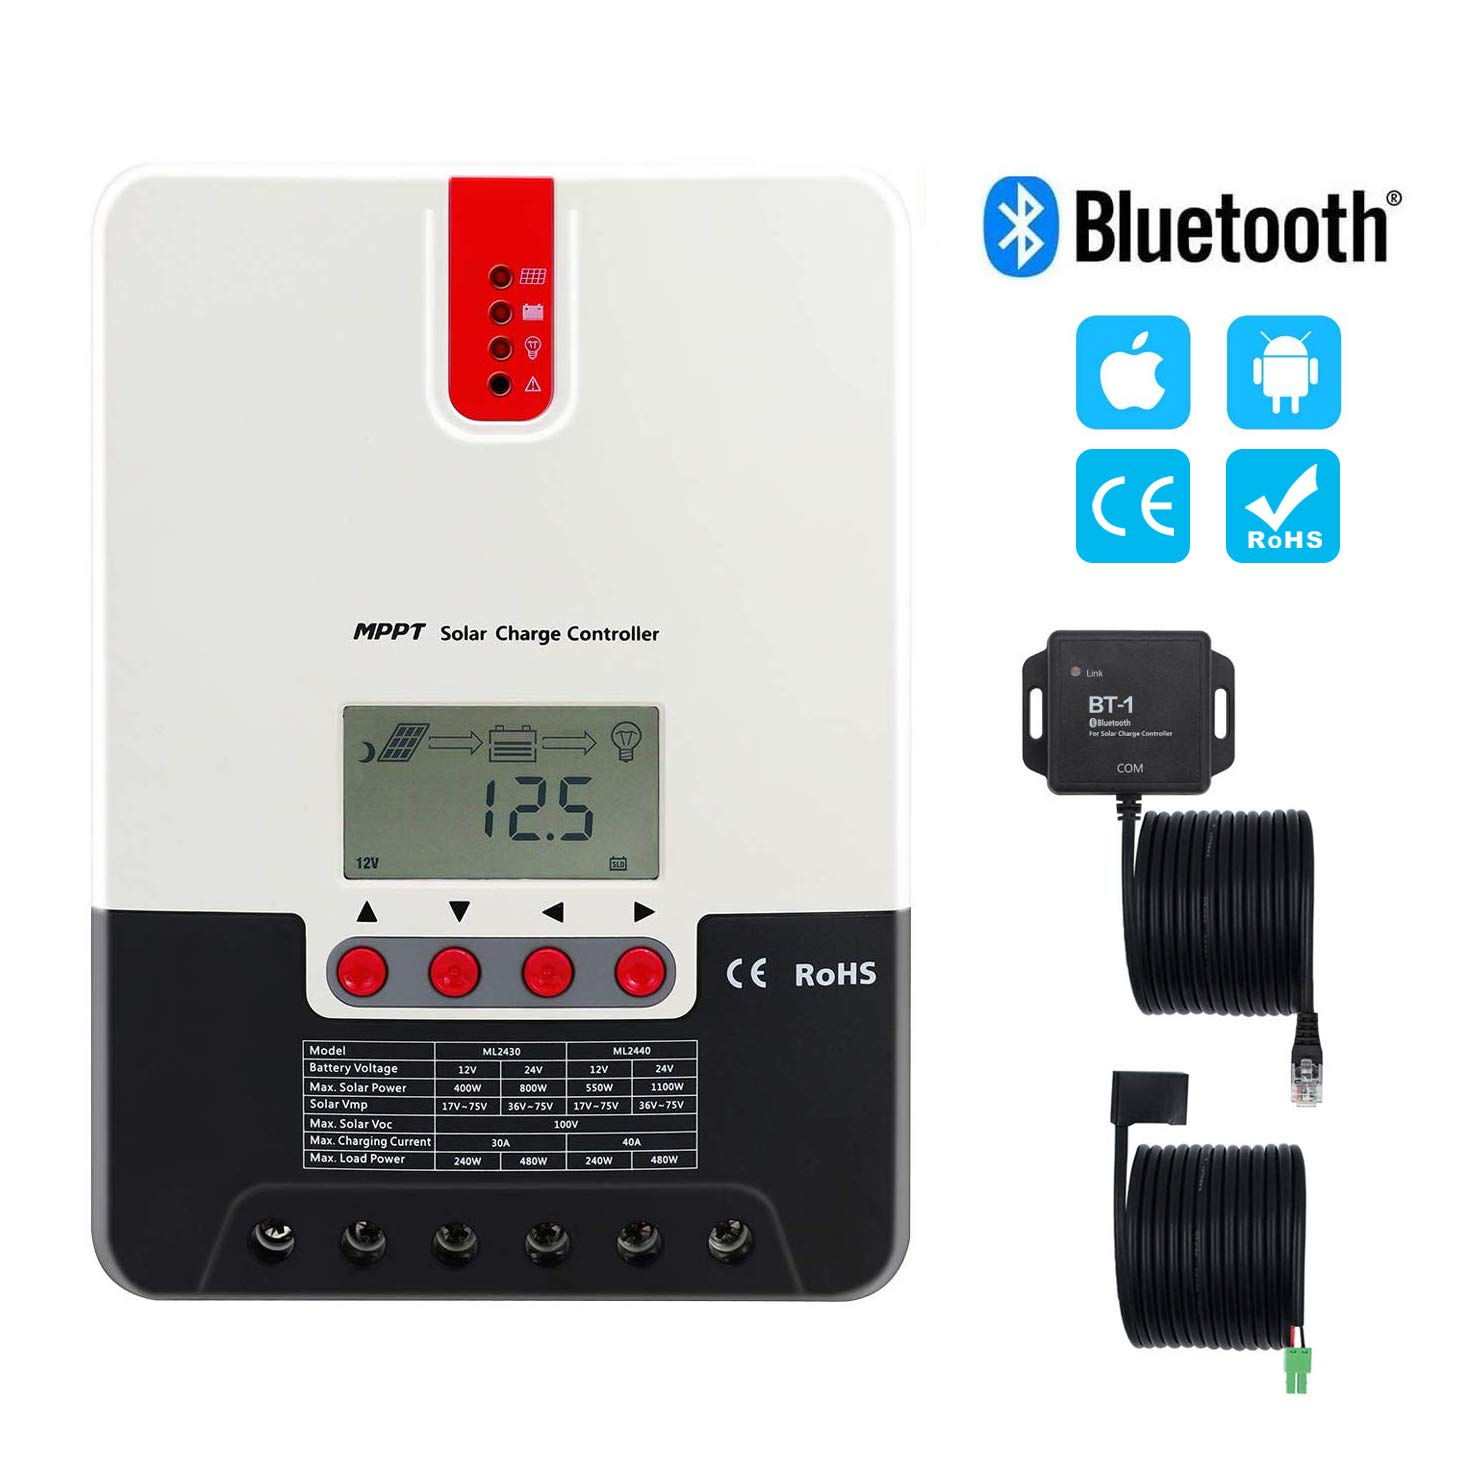 PowMr MPPT Charge Controller 40 amp 12V 24V AUTO - Max 100V 1100W Input Solar Charge Regulator for Lithium, Sealed, Gel, Flooded Battery with Bluetooth Module Programmable LCD Display